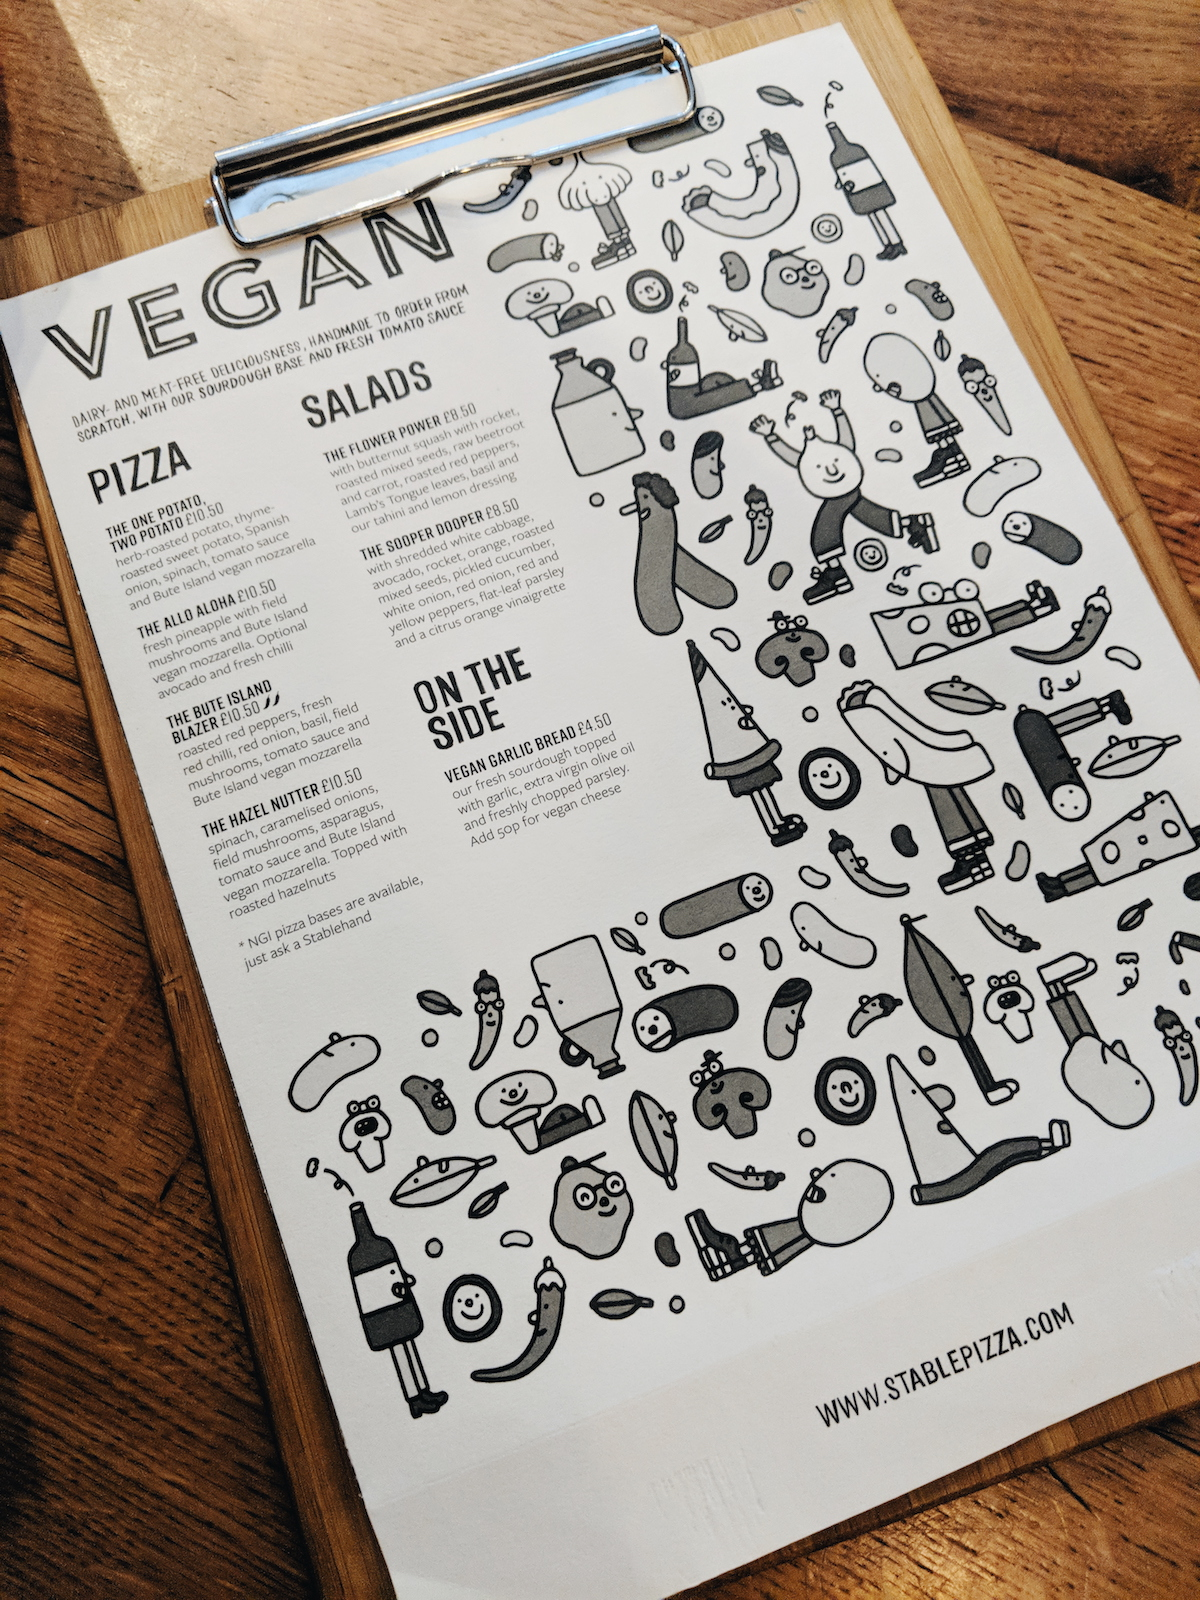 The vegan menu at The Stable